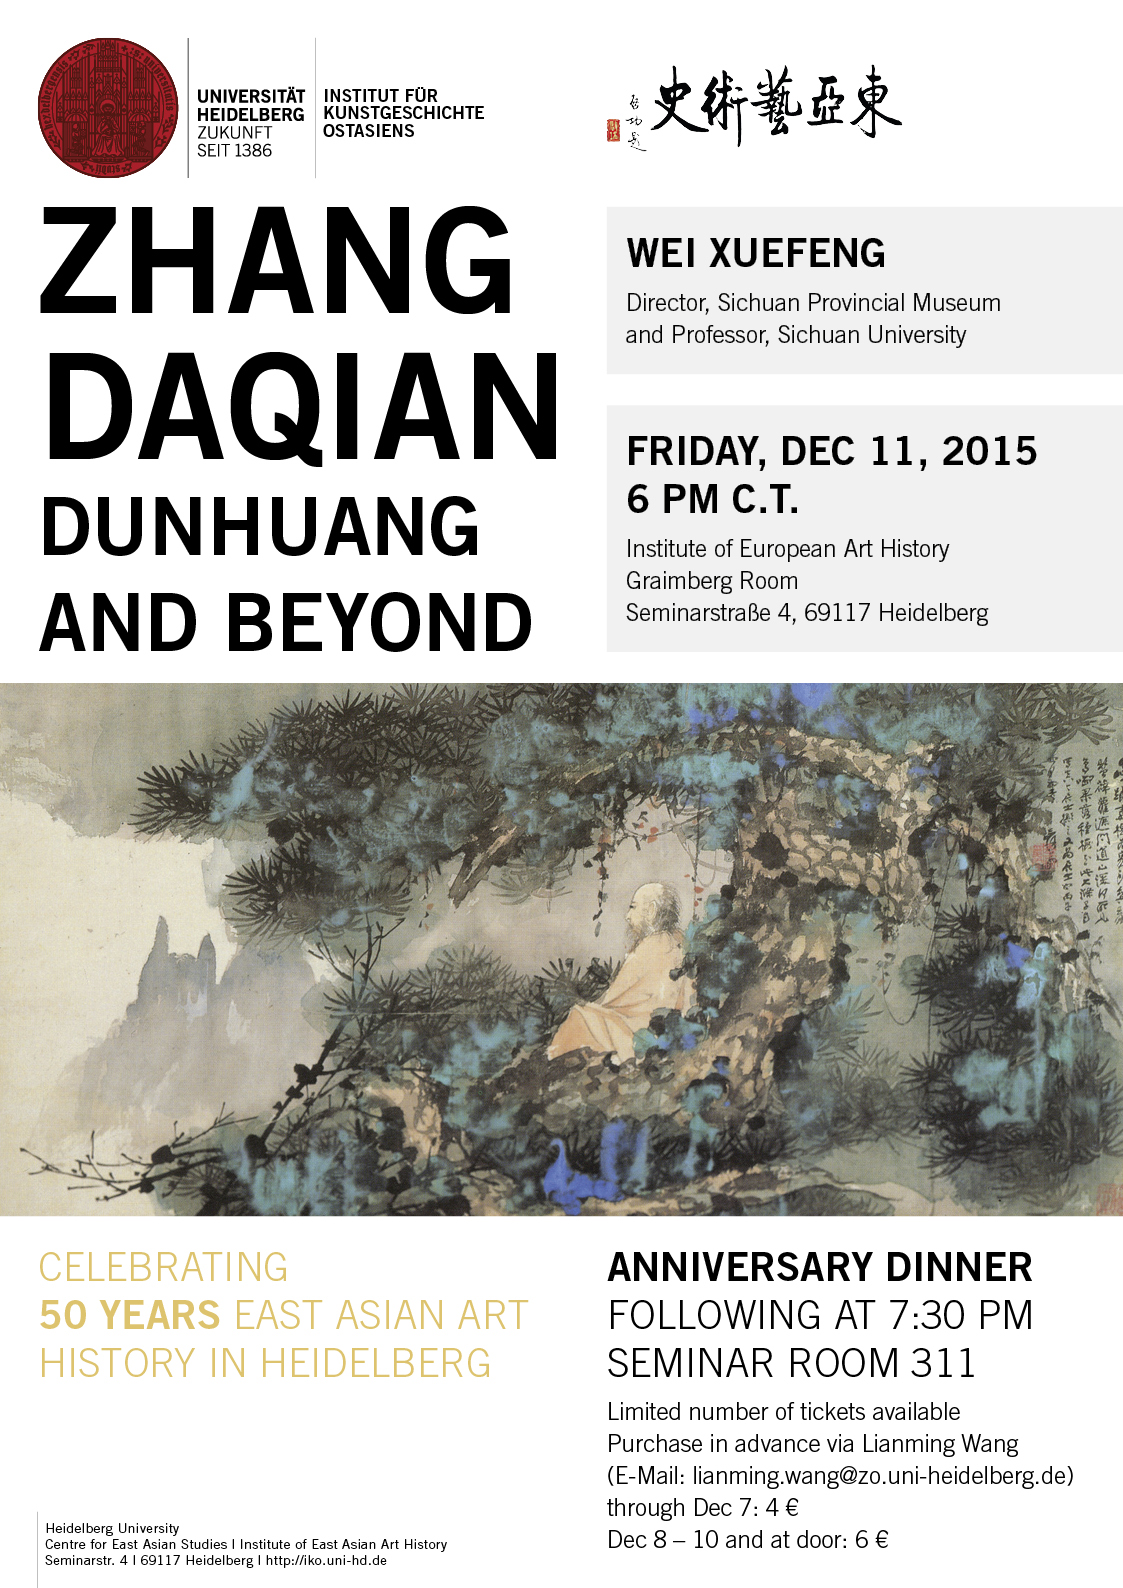 11.12.2015 | Talk by Wei Xuefeng